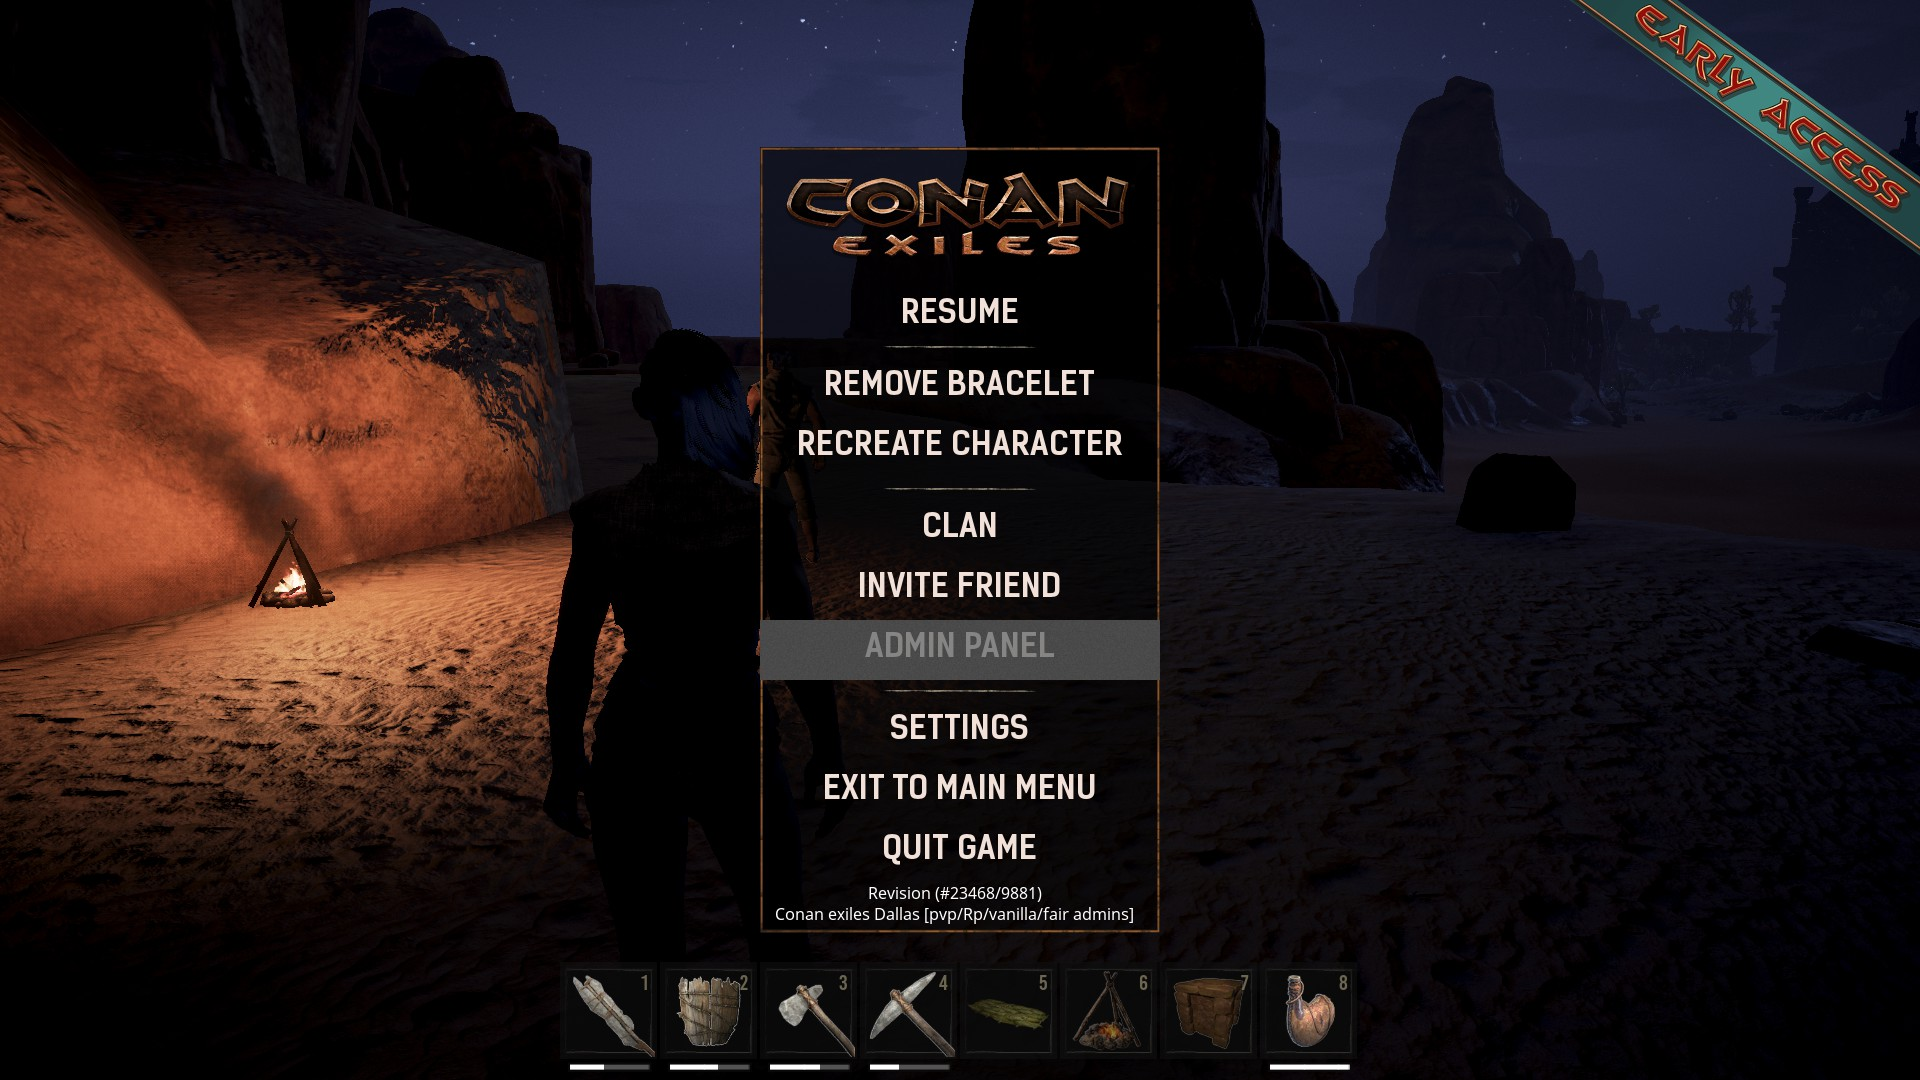 Conan Exiles - Gameplay Tips and Tricks for New and Advanced